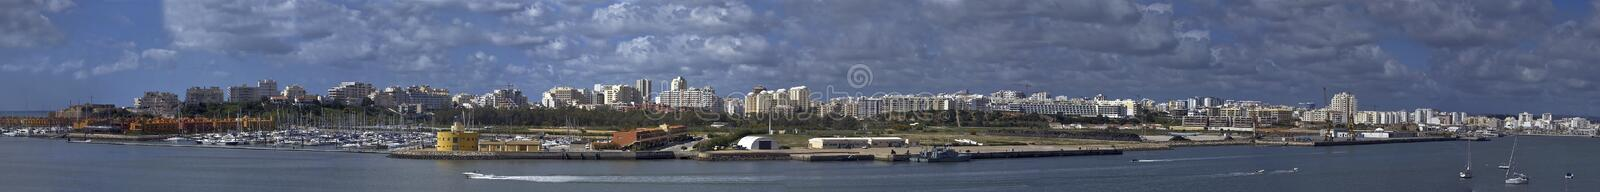 Panoramic view at Portimao city in Portugal stock images